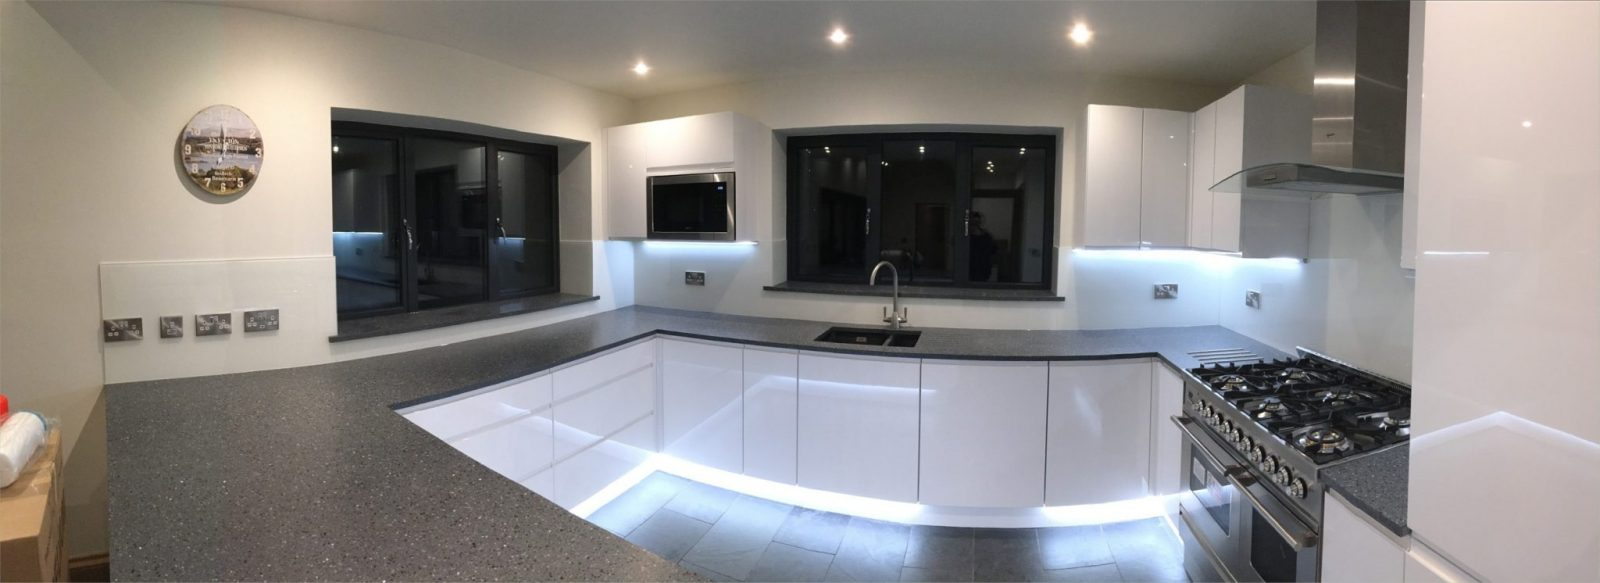 Stunning Full Kitchen Glass Splashback Application